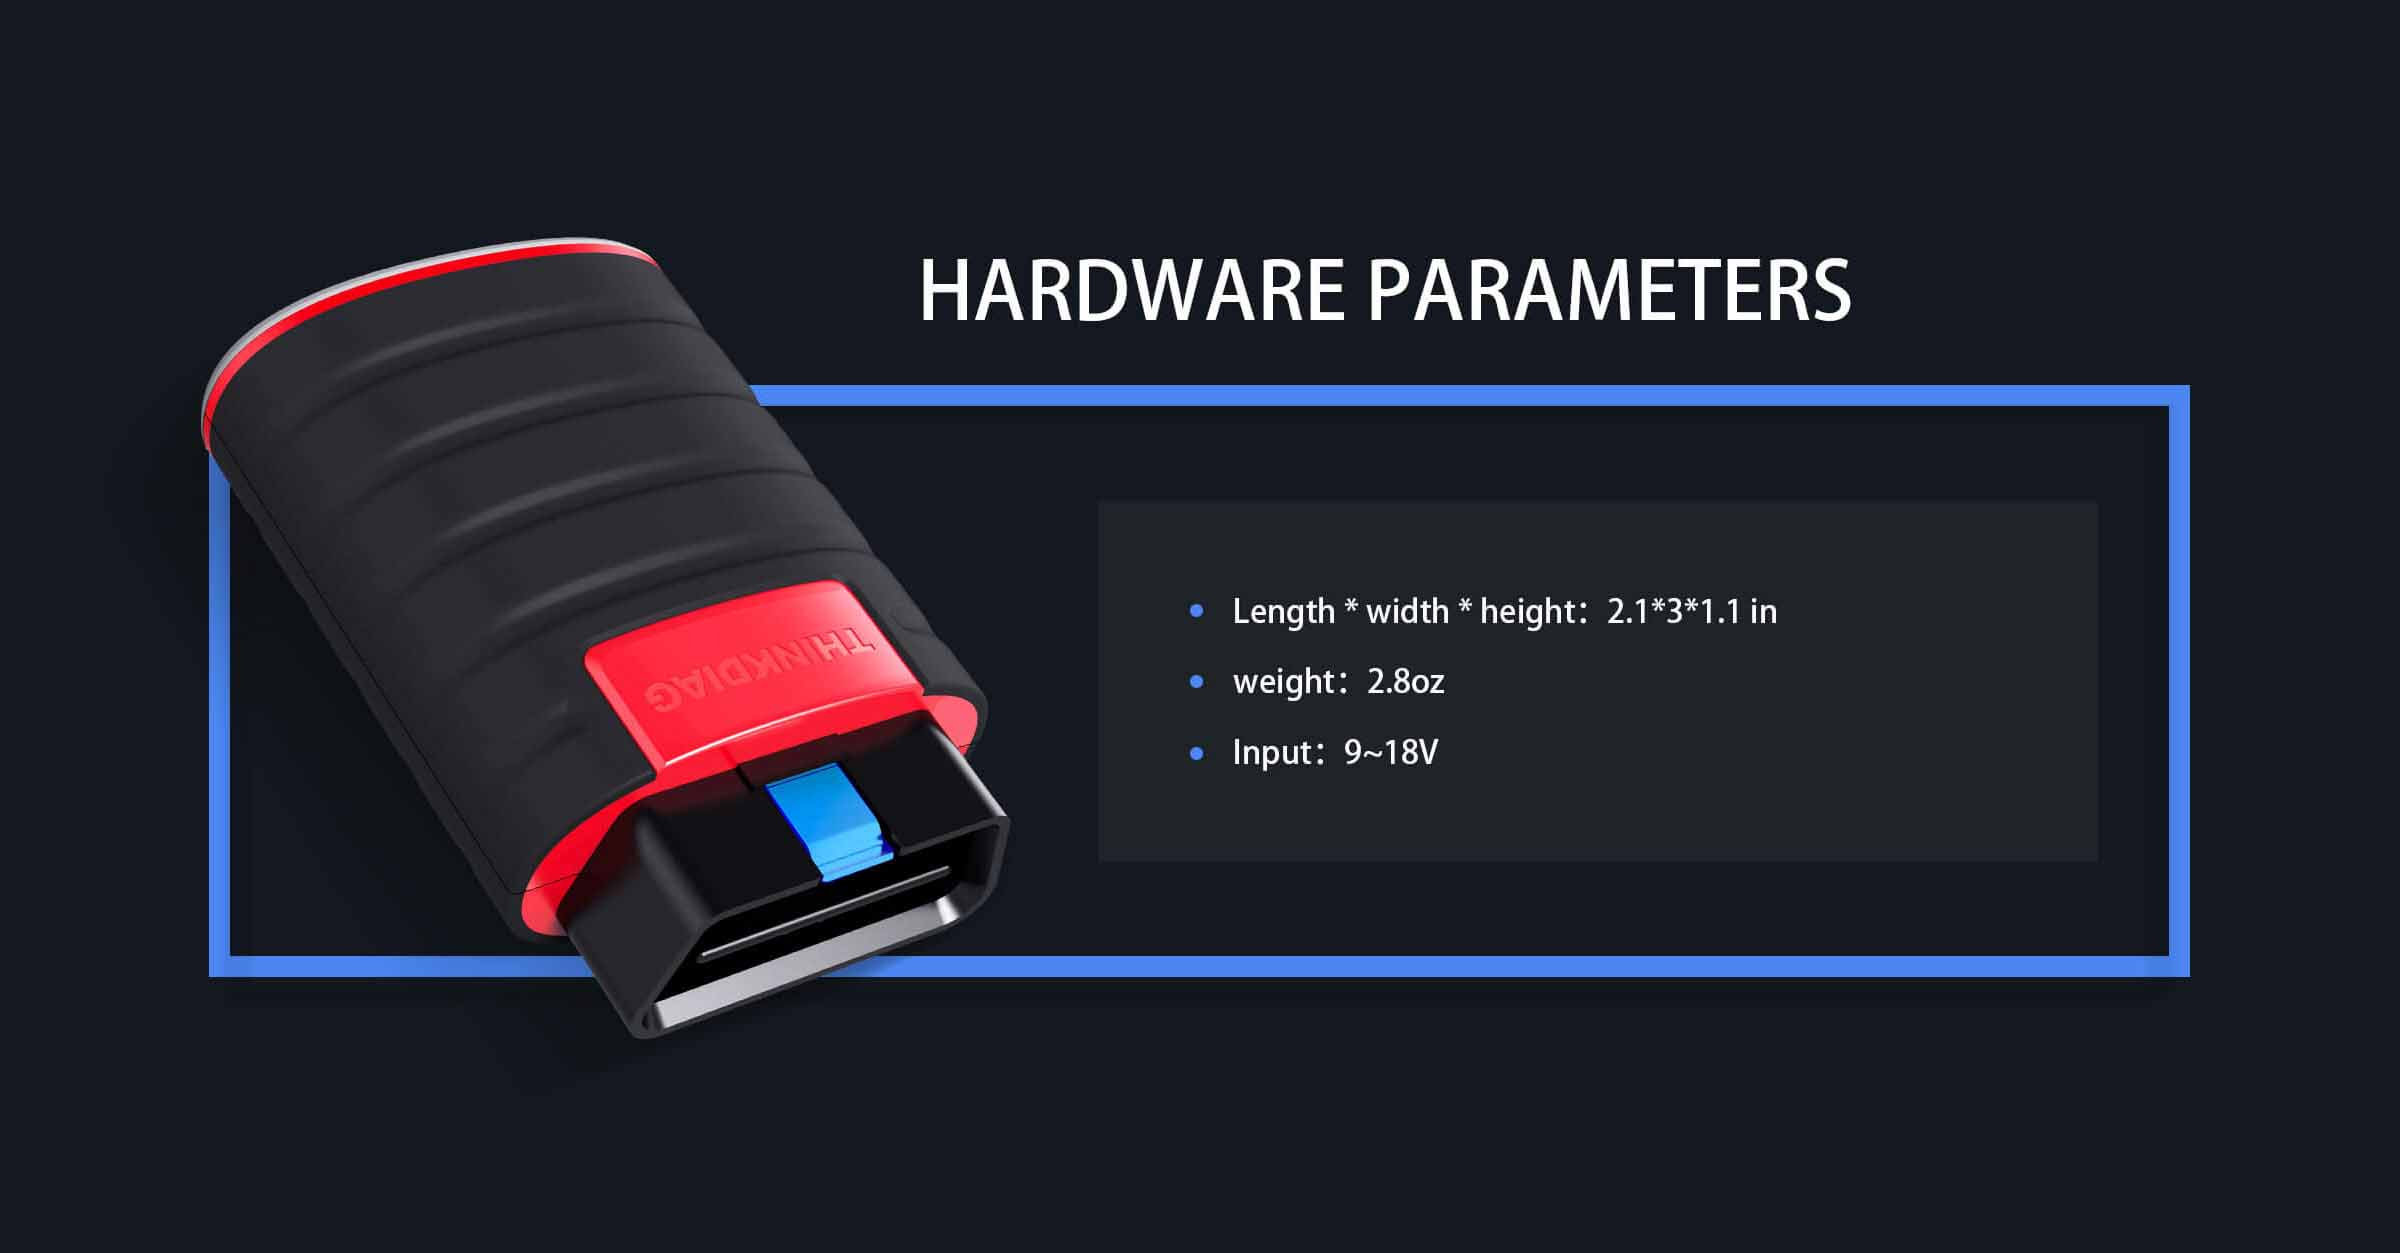 The ThinkDiag Hardware Parameters are Length 2.1*3*1.1 Weight 2.9oz Input: 9-18V